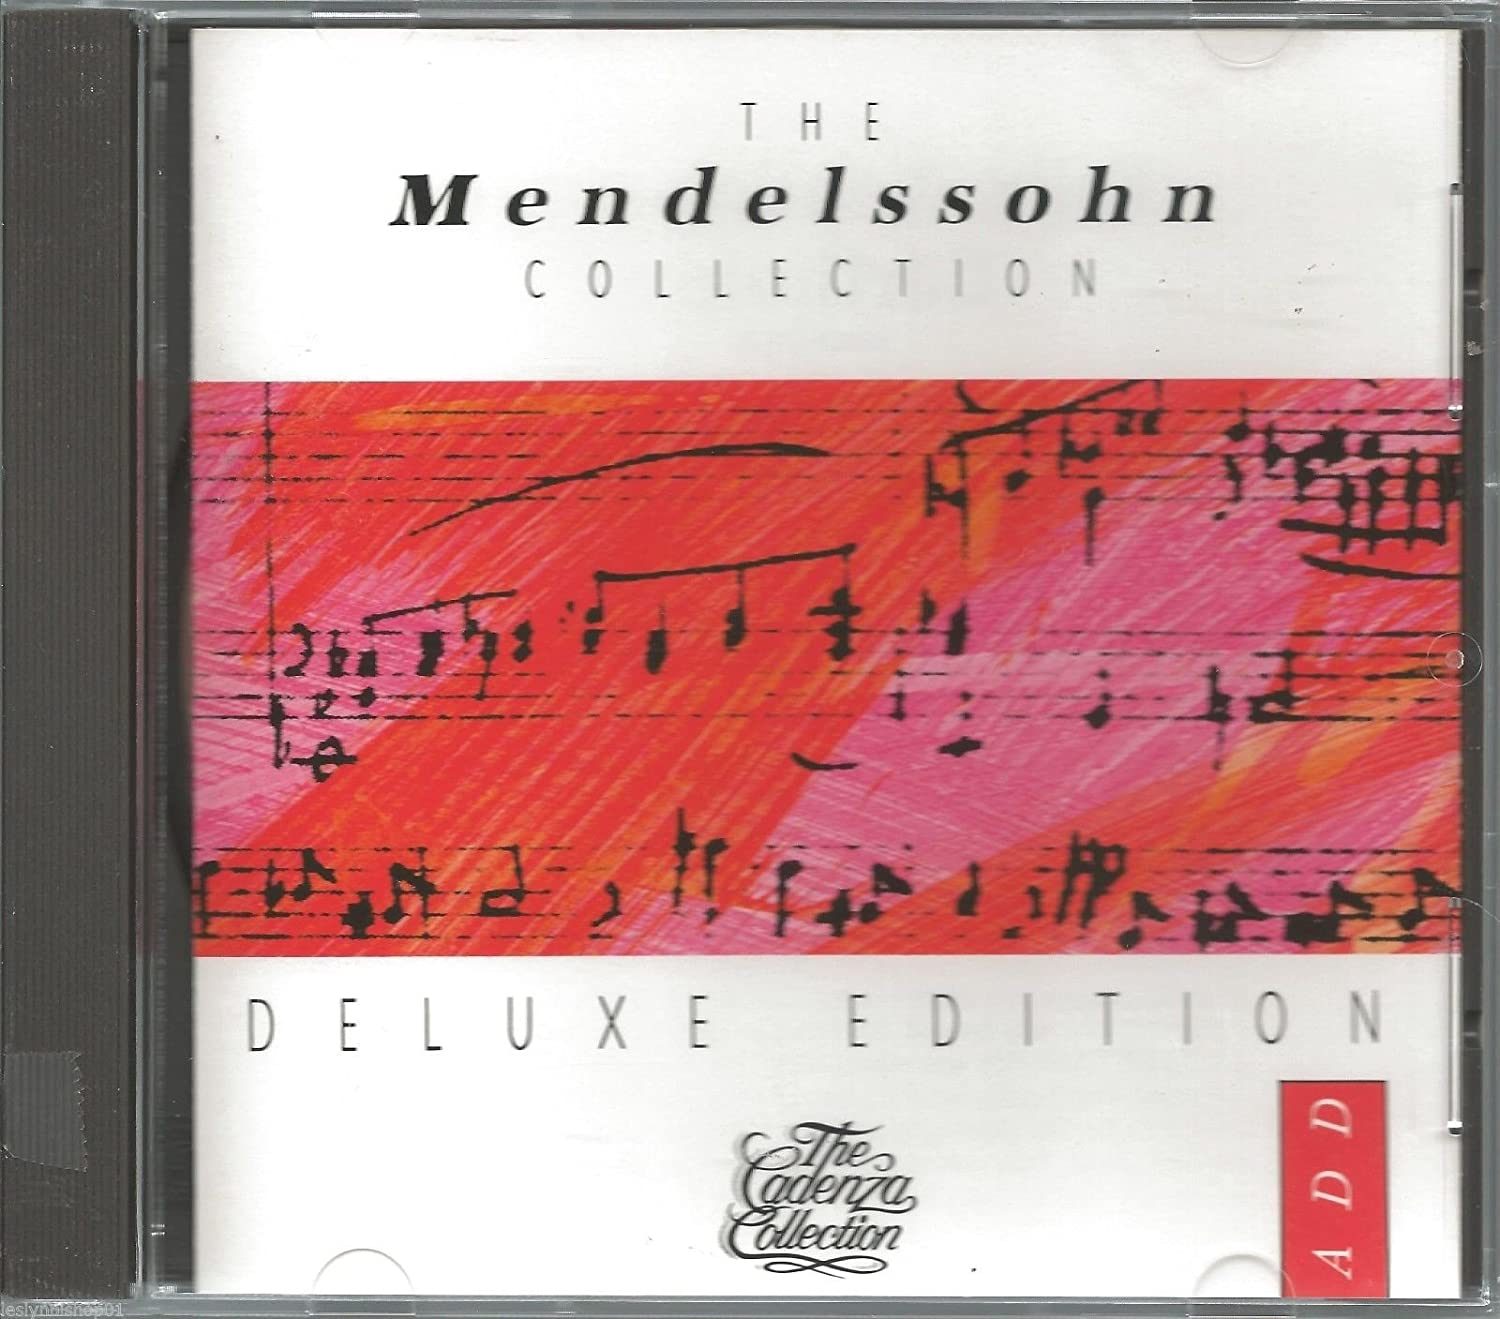 Mendelssohn Collection